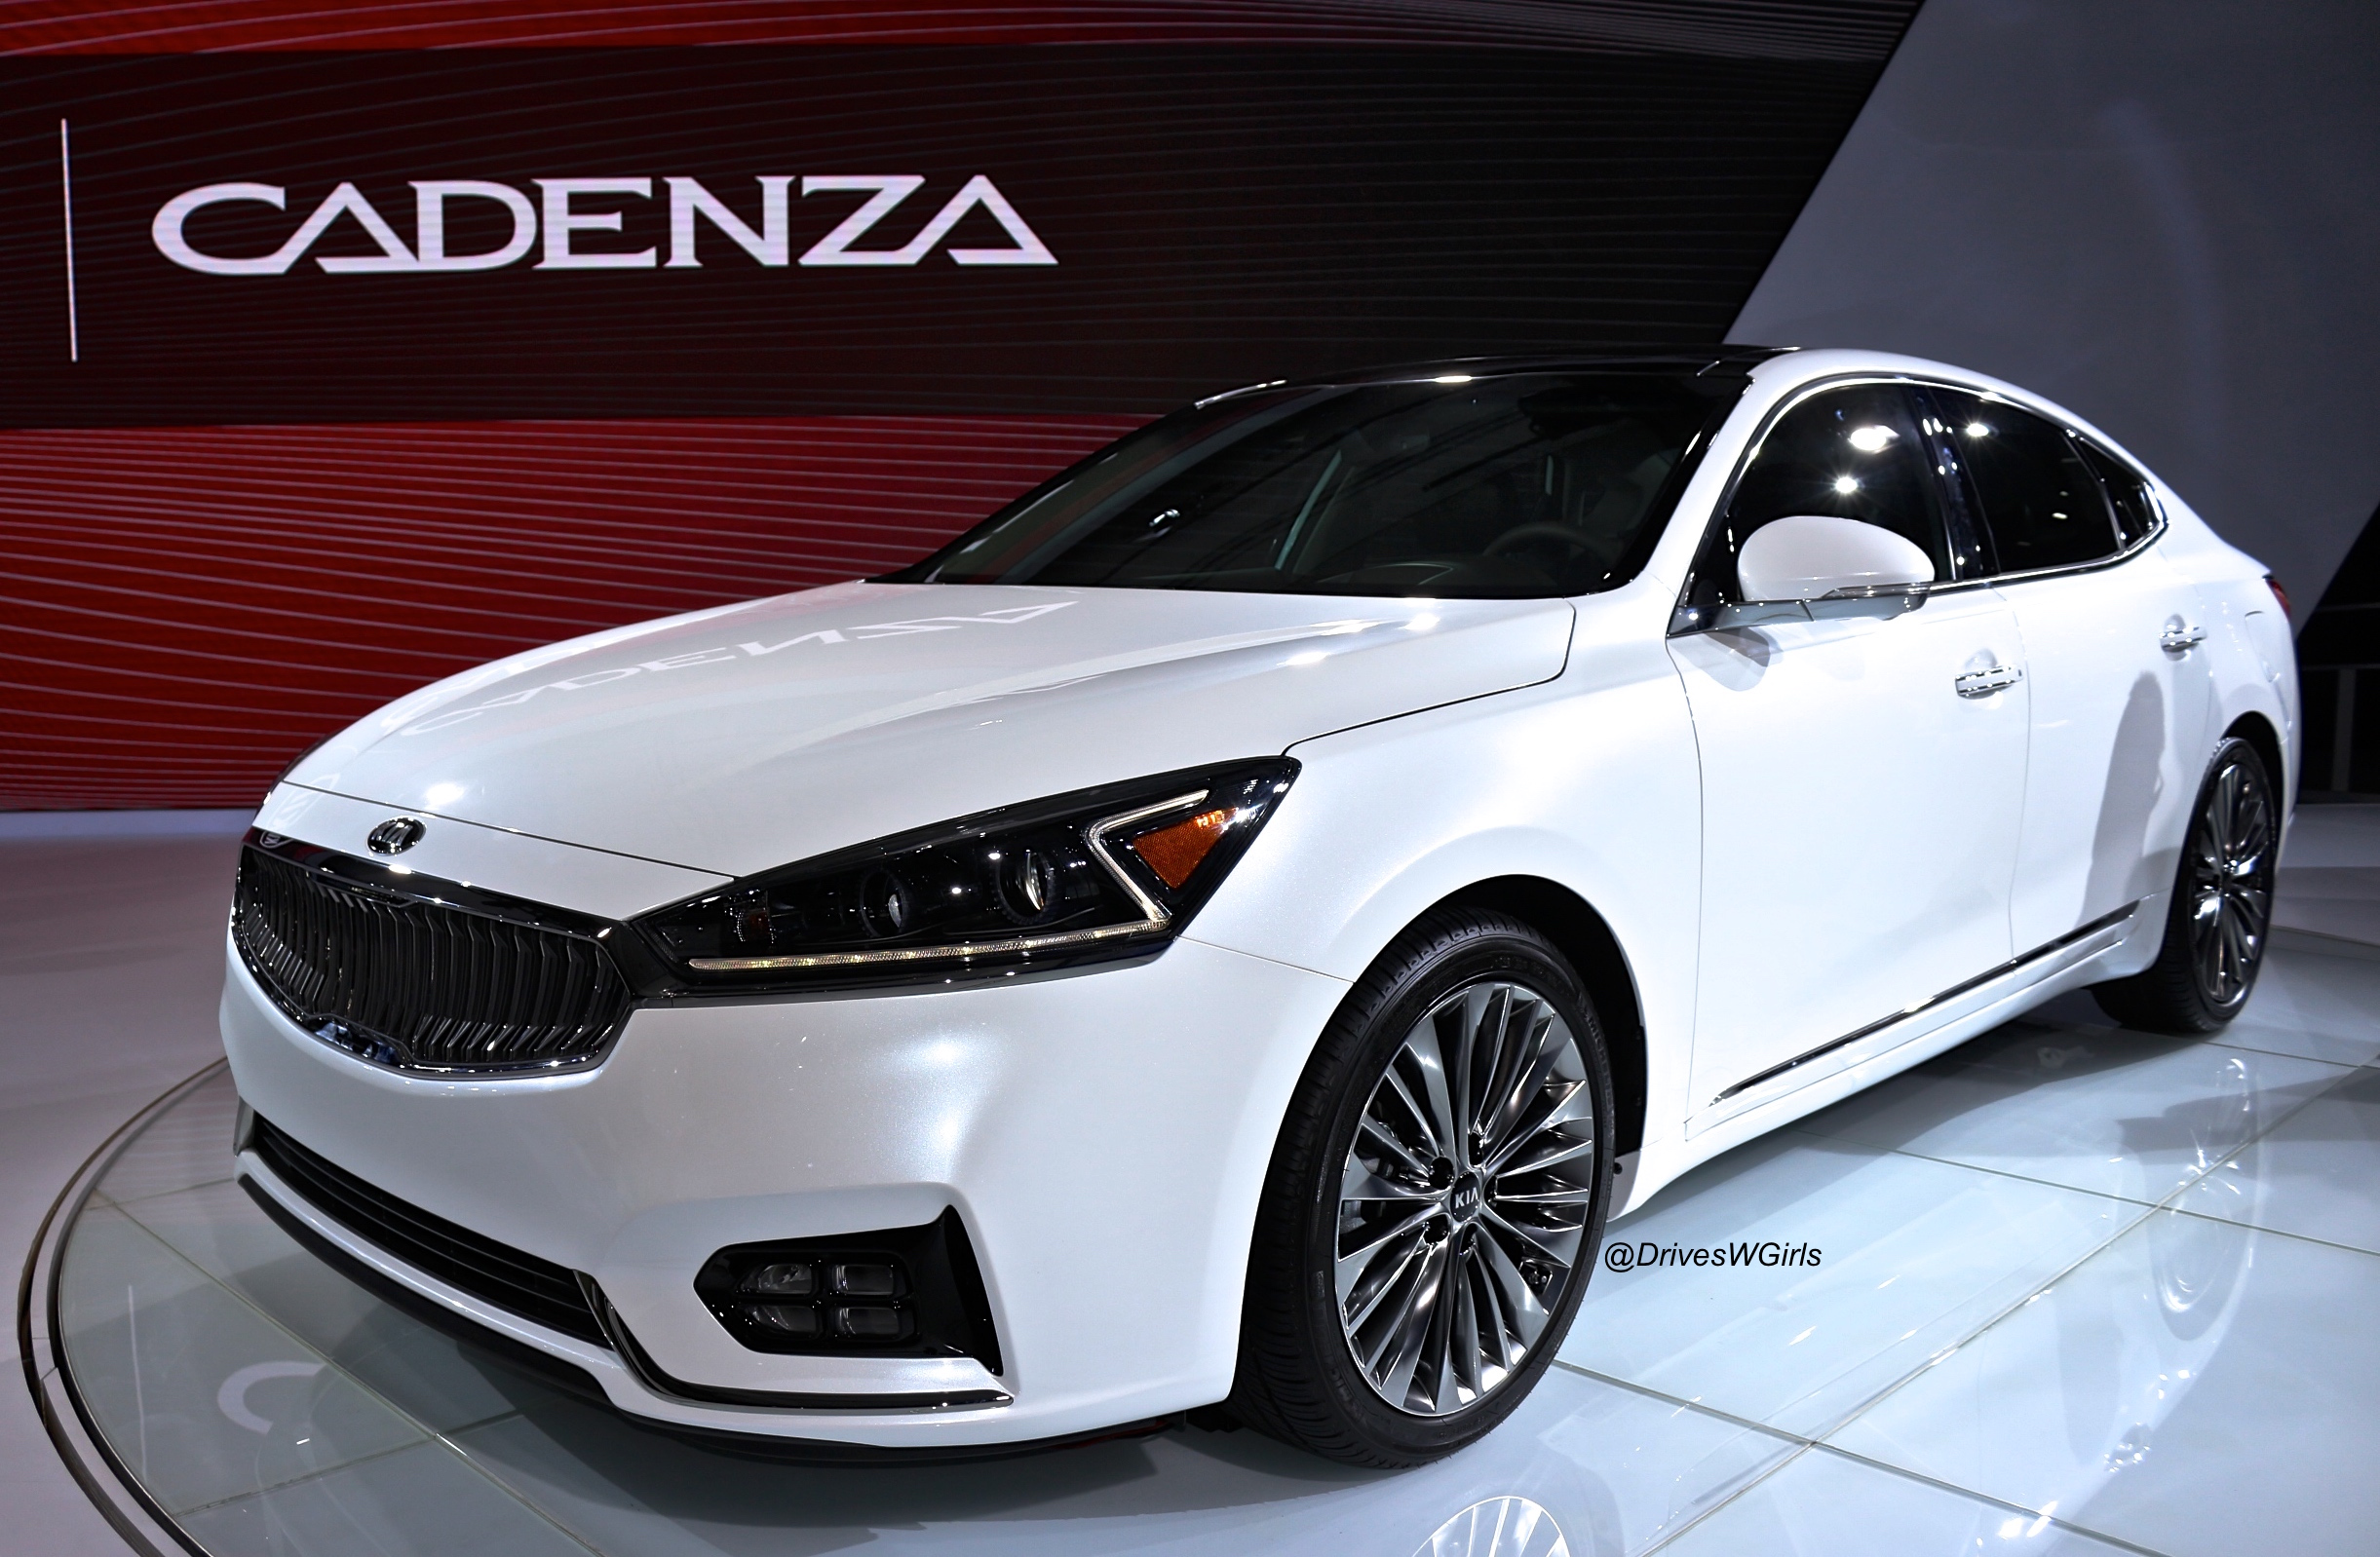 kia unveils new cadenza at the new york intl auto show. Black Bedroom Furniture Sets. Home Design Ideas